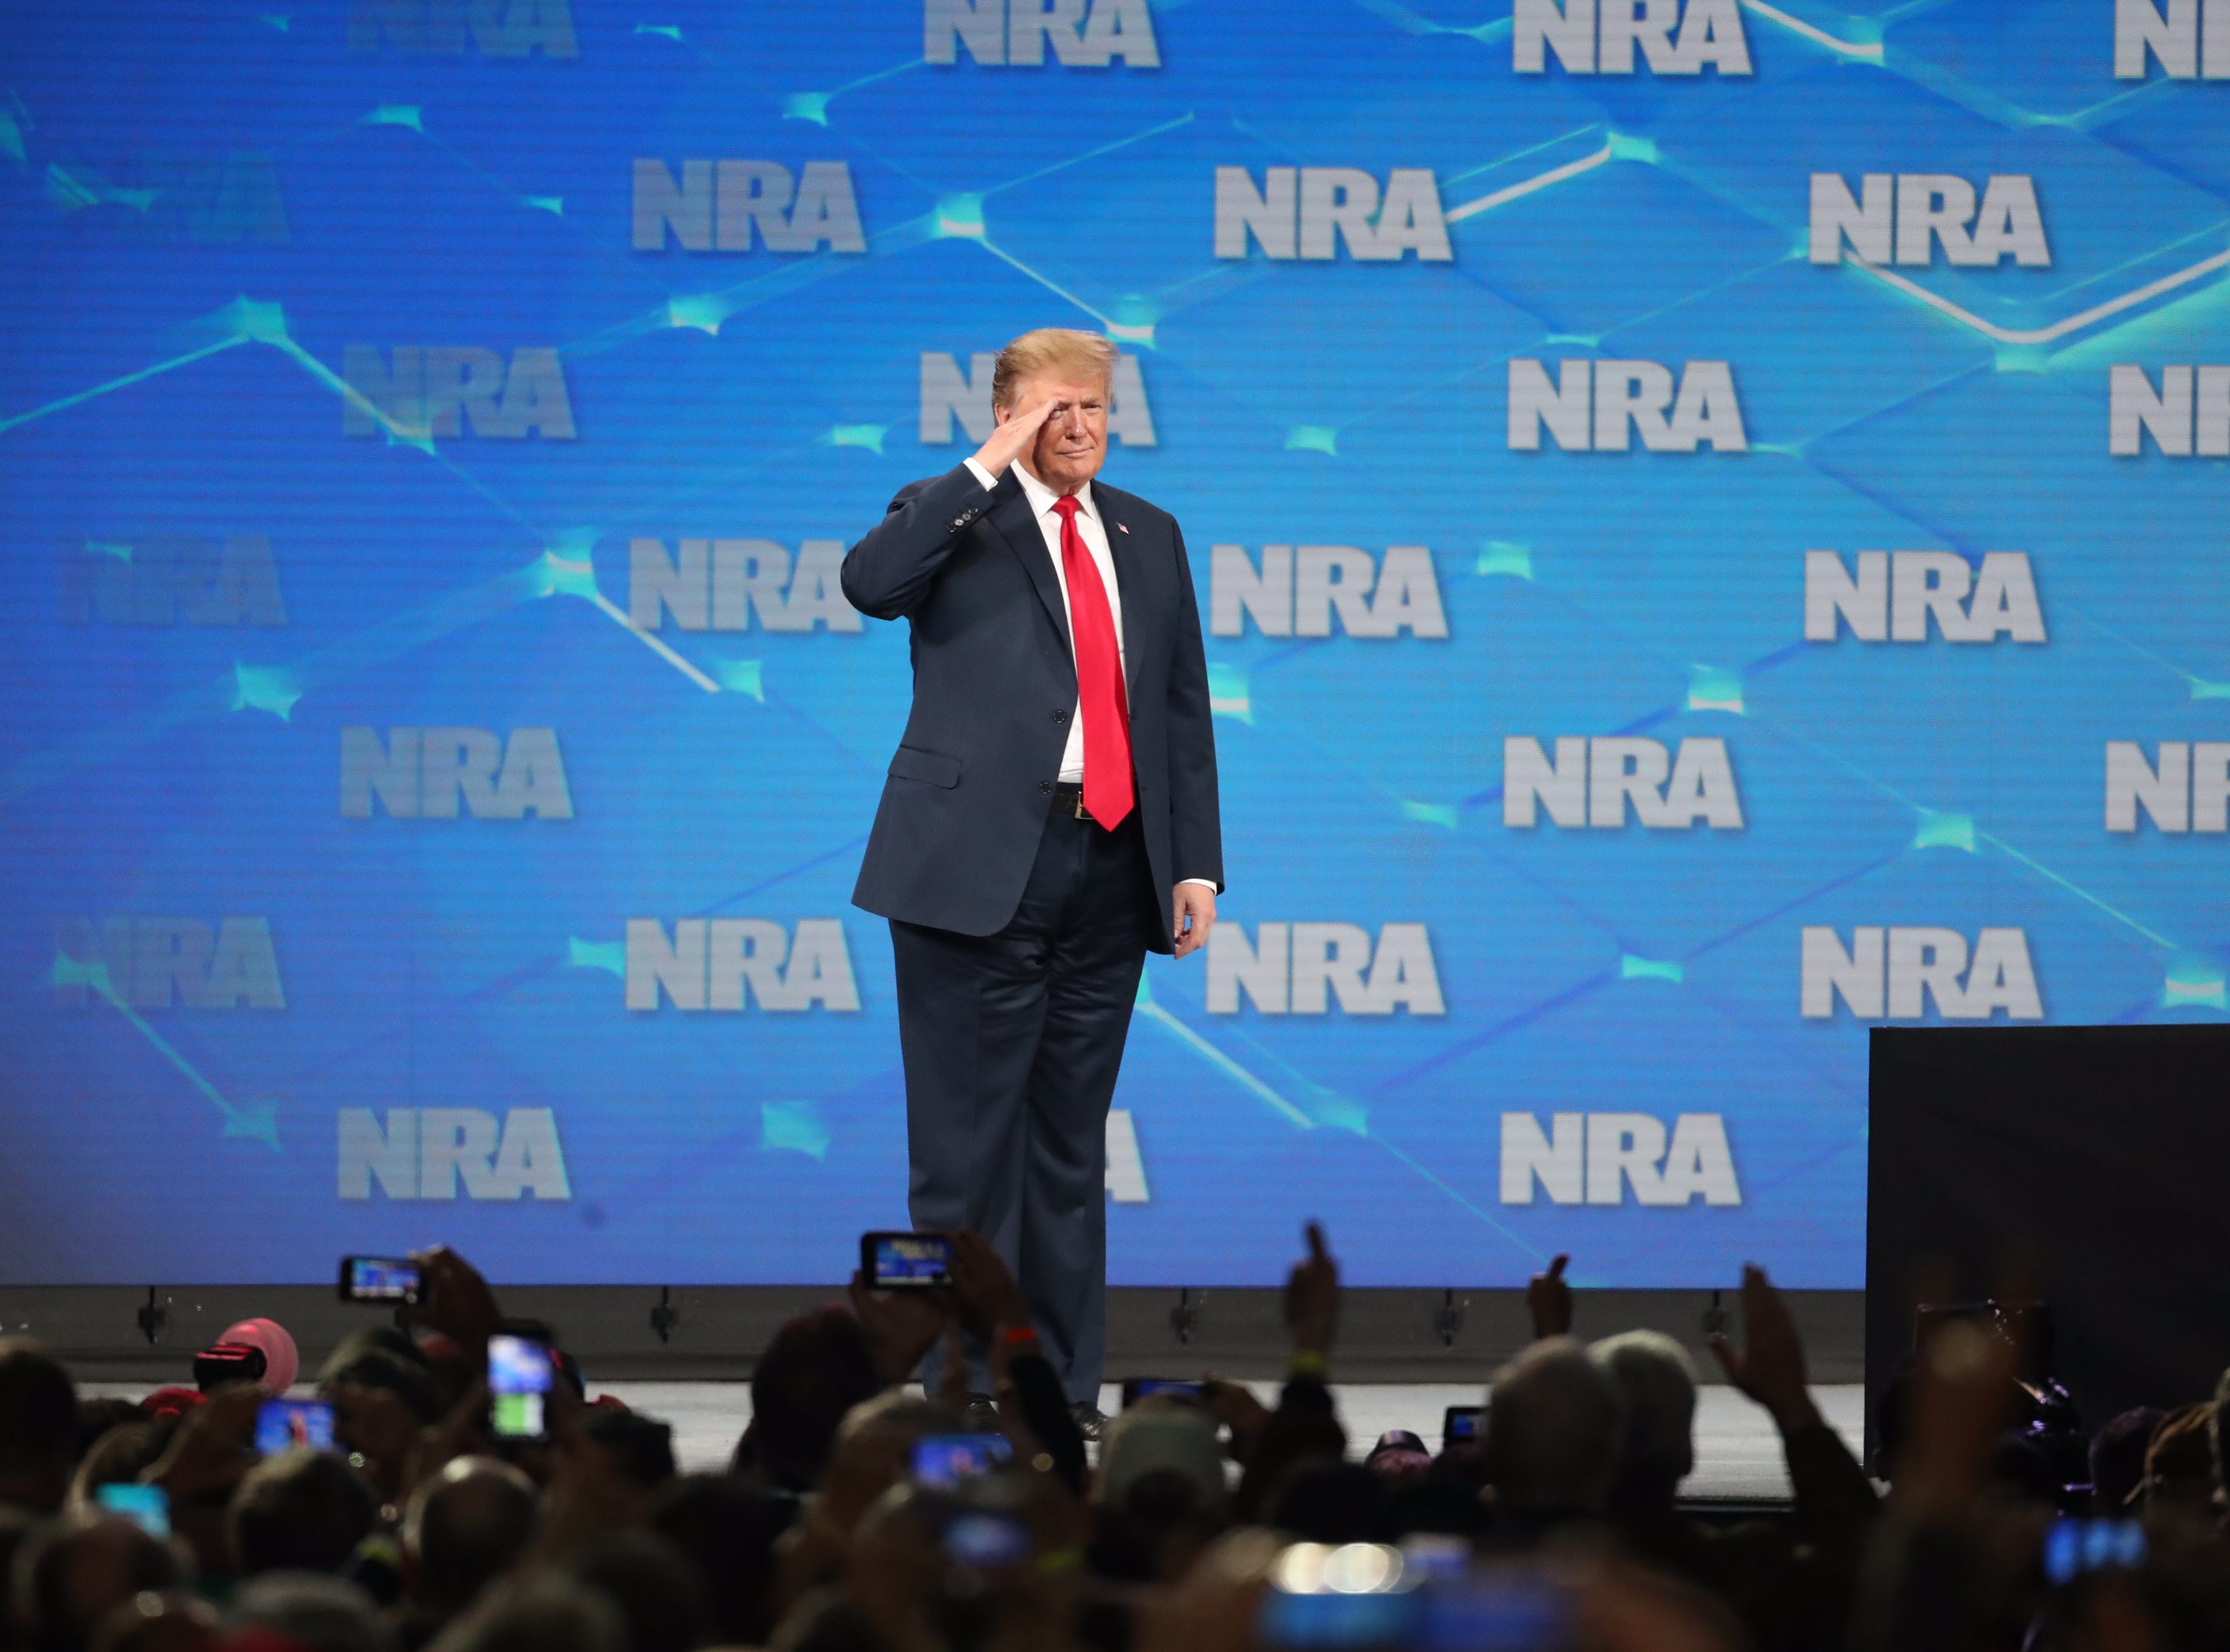 President Donald Trump salutes the crowd at the National Rifle Association Institute for Legislative Action Leadership Forum, Friday, April 26, 2019, at Lucas Oil Stadium in Indianapolis. The forum is part of the 148th NRA annual meetings and exhibits in Indianapolis.